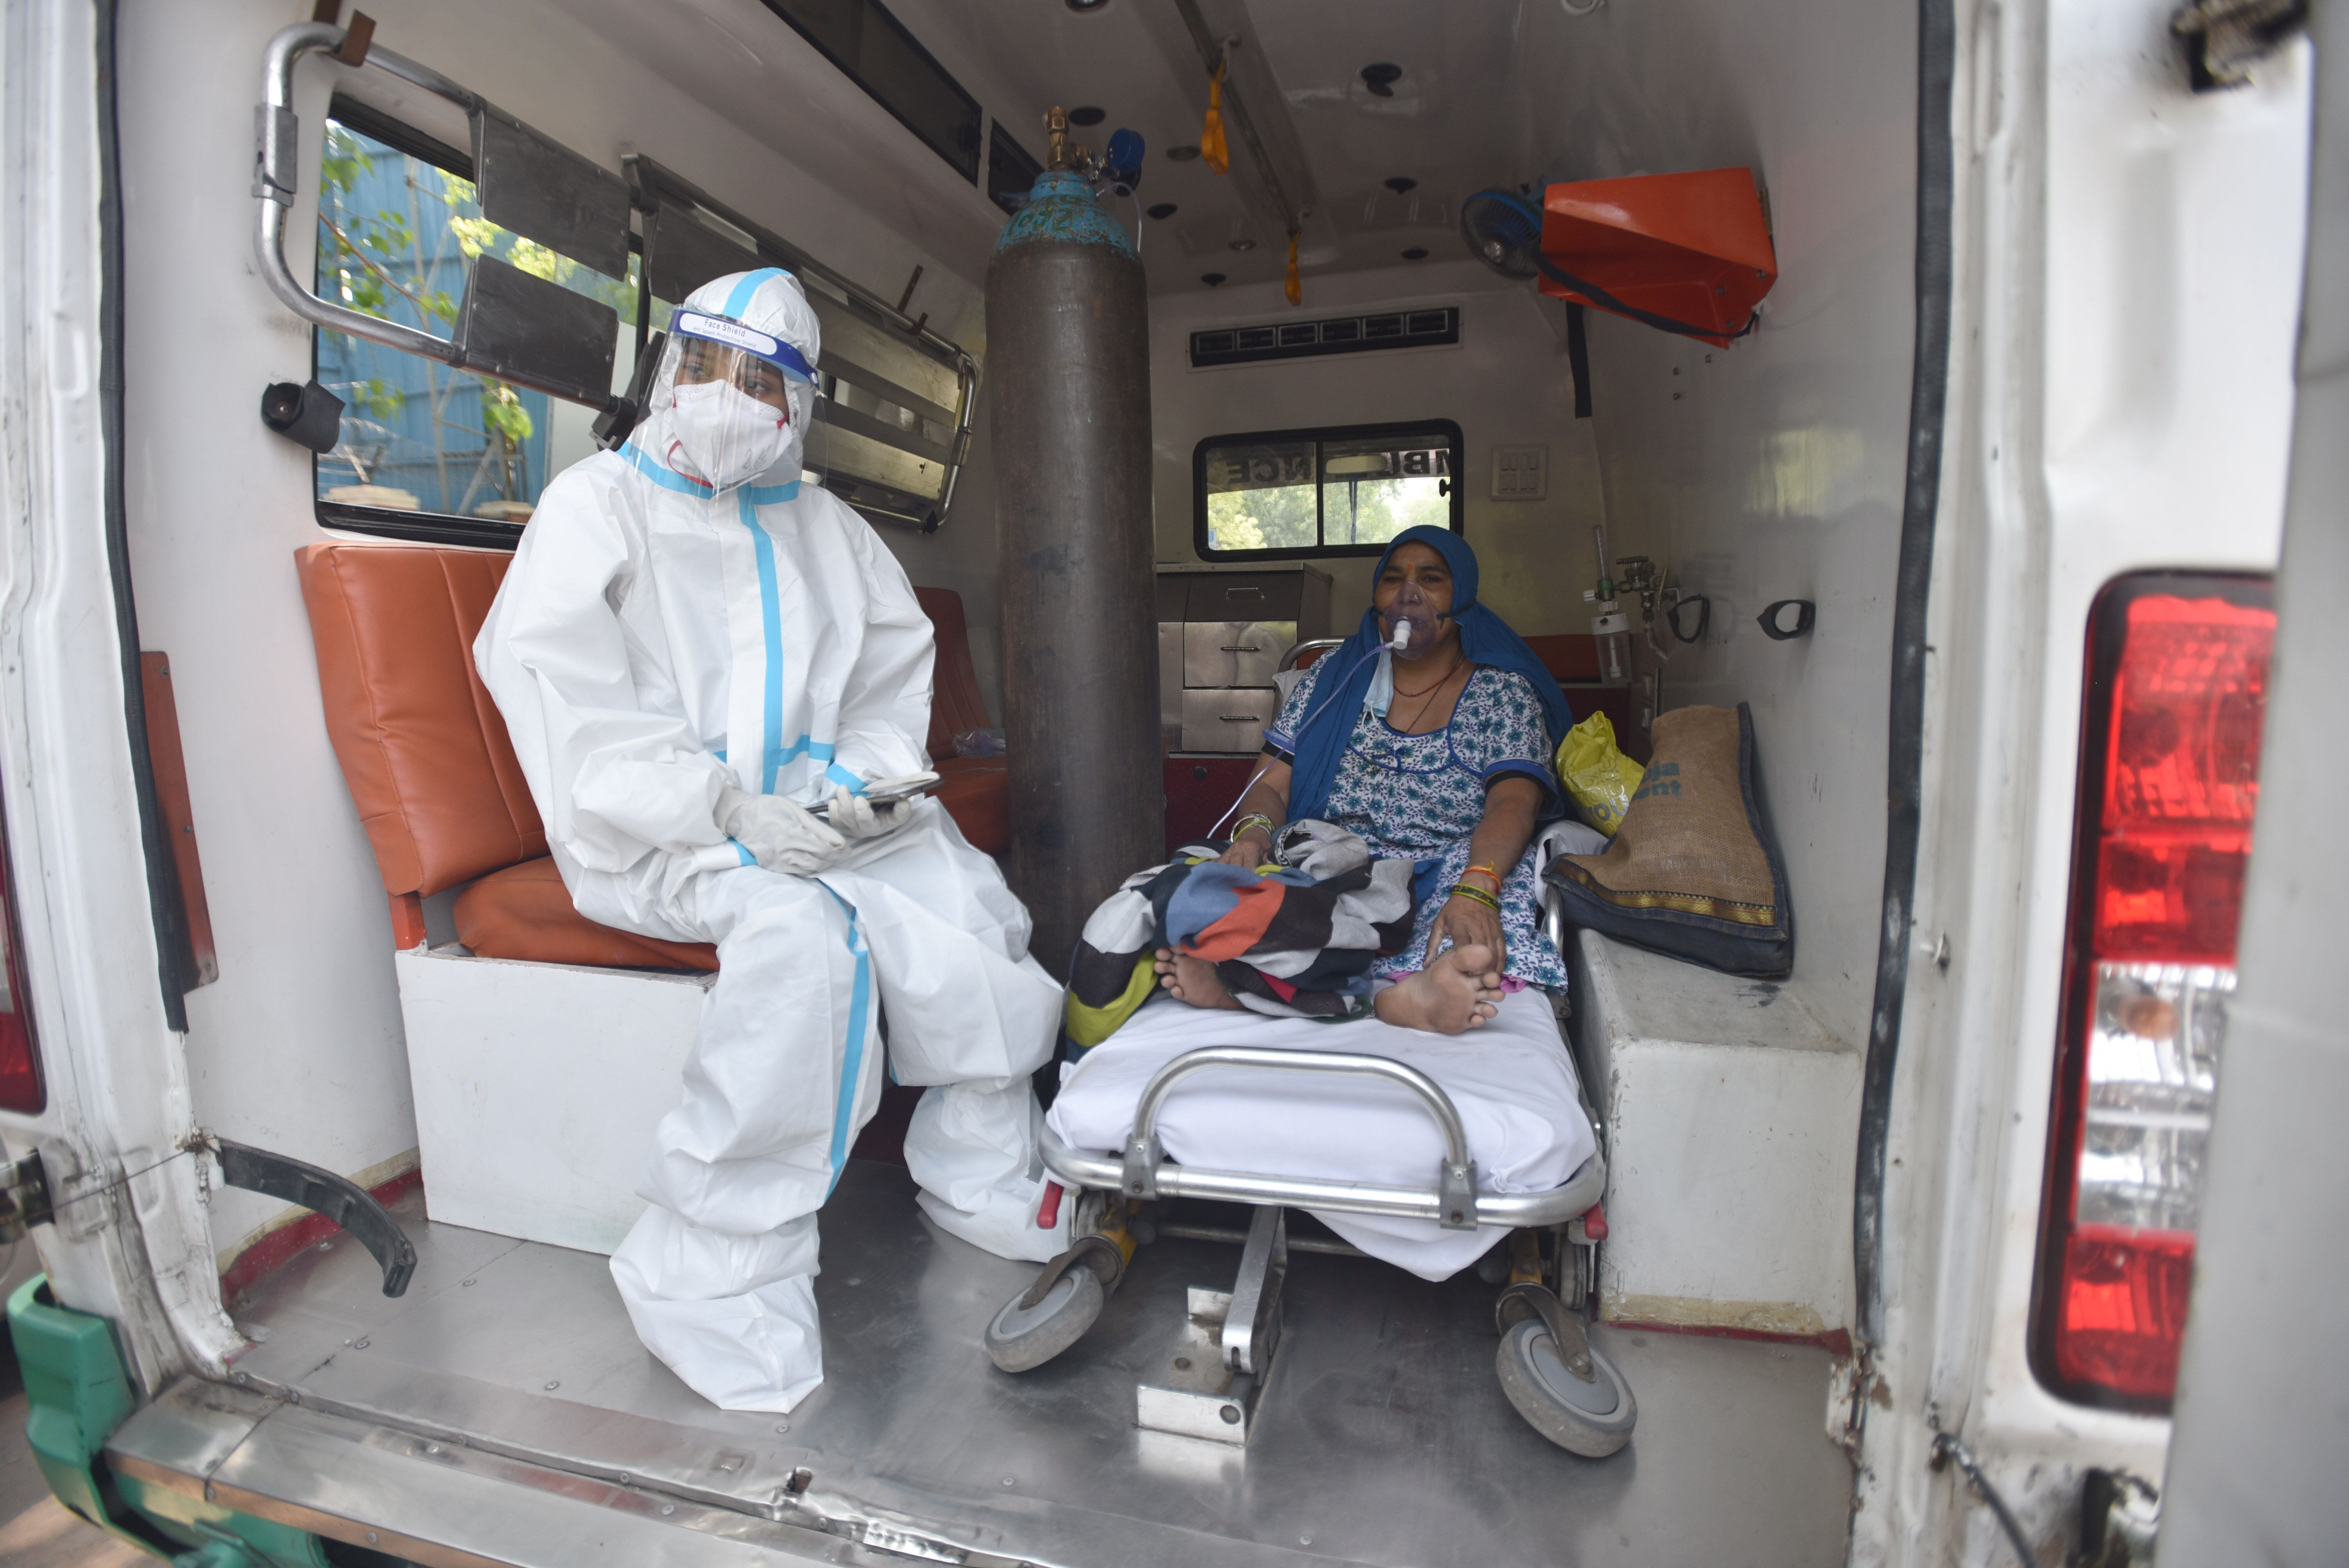 A COVID-19 patient seen inside an ambulance while waiting for admission amid shortage of beds, at LNJP Hospital on April 22,